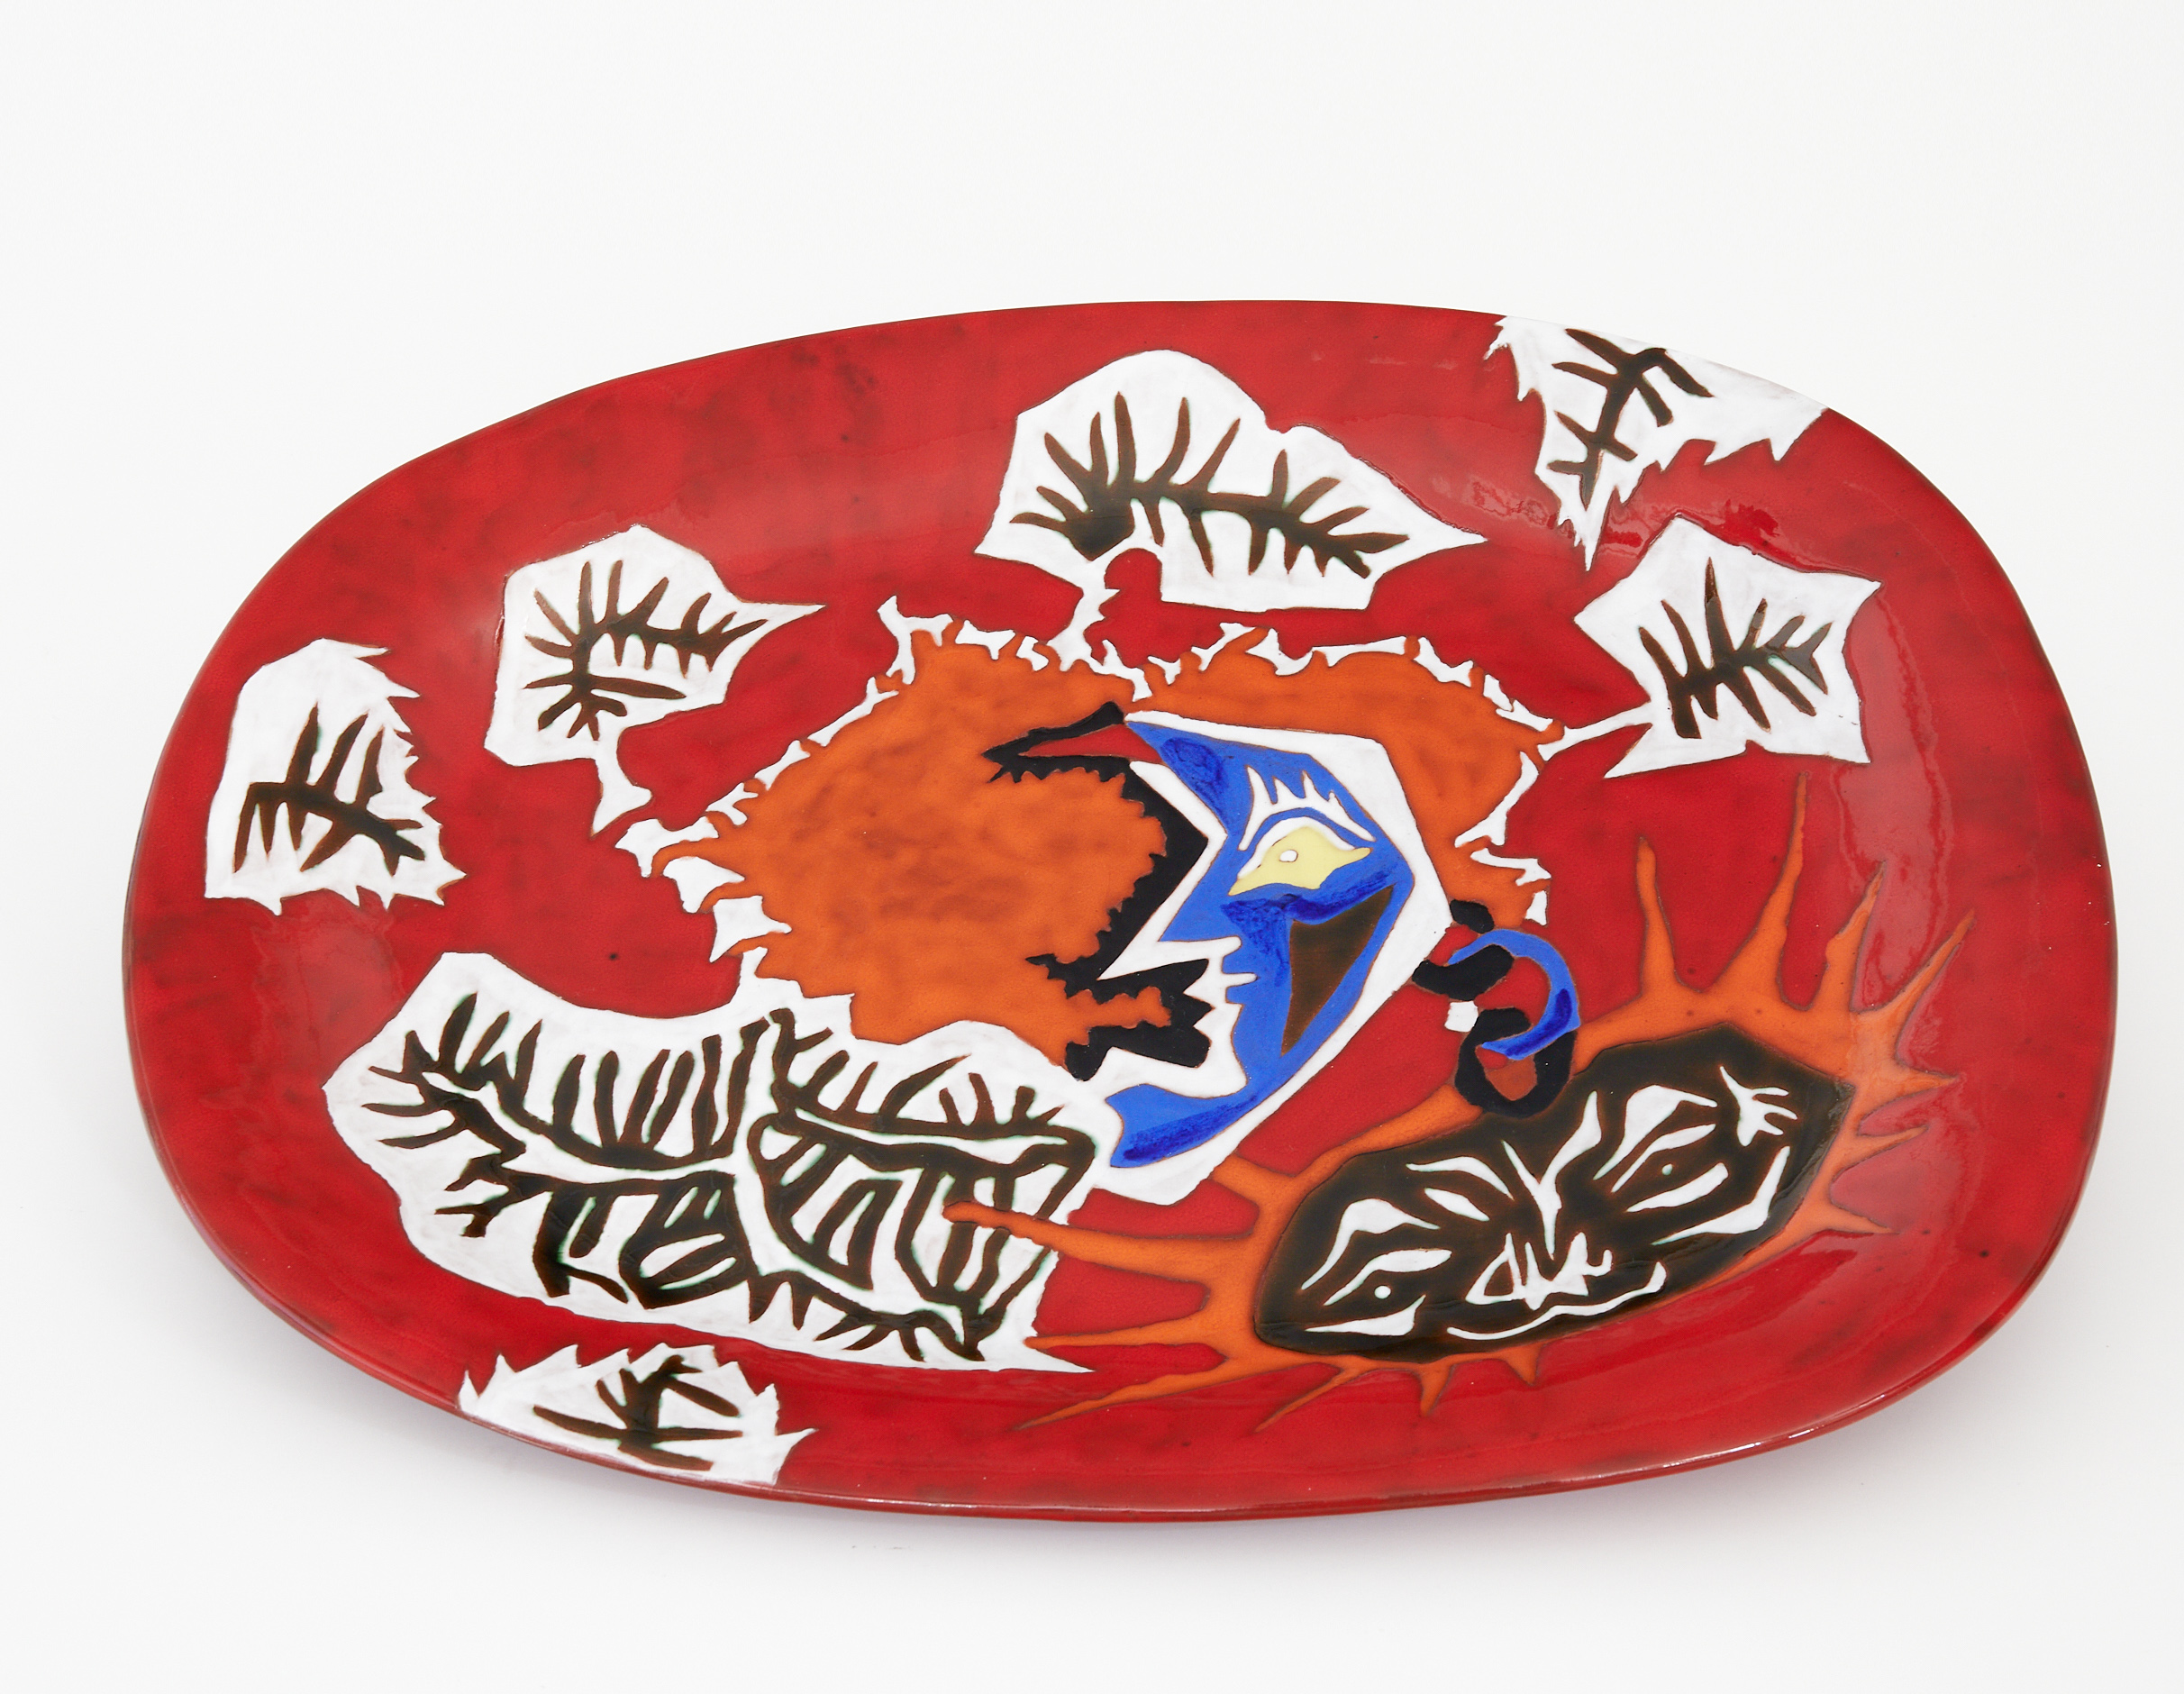 red-glazed-ceramic-dish-by-jean-lurcat-for-atelier-sant-vicens-marked-1-50-image-02